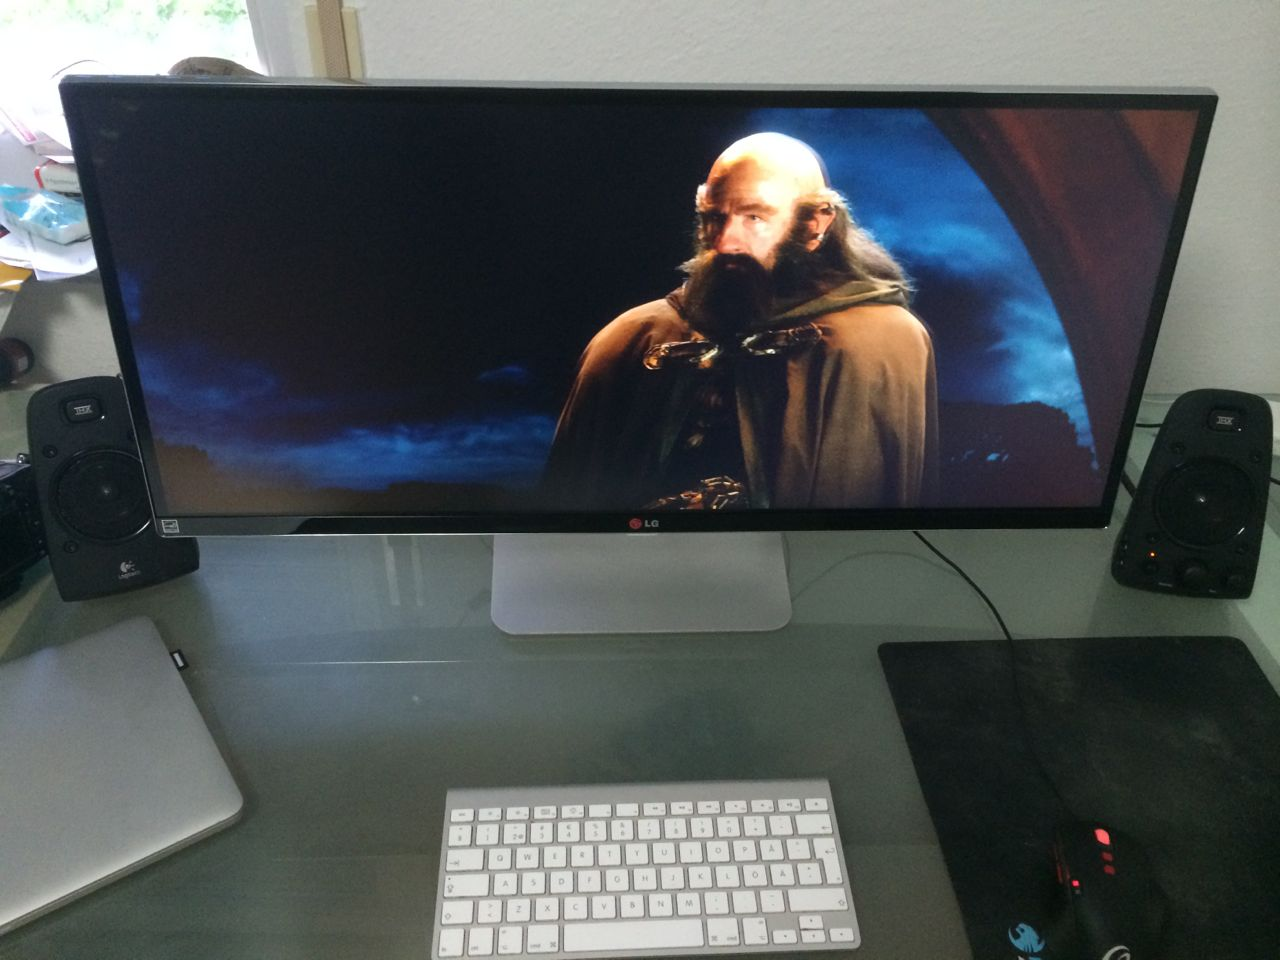 LGs new 3440x1440 34UM95 monitor and Mac compatibility? - Ars